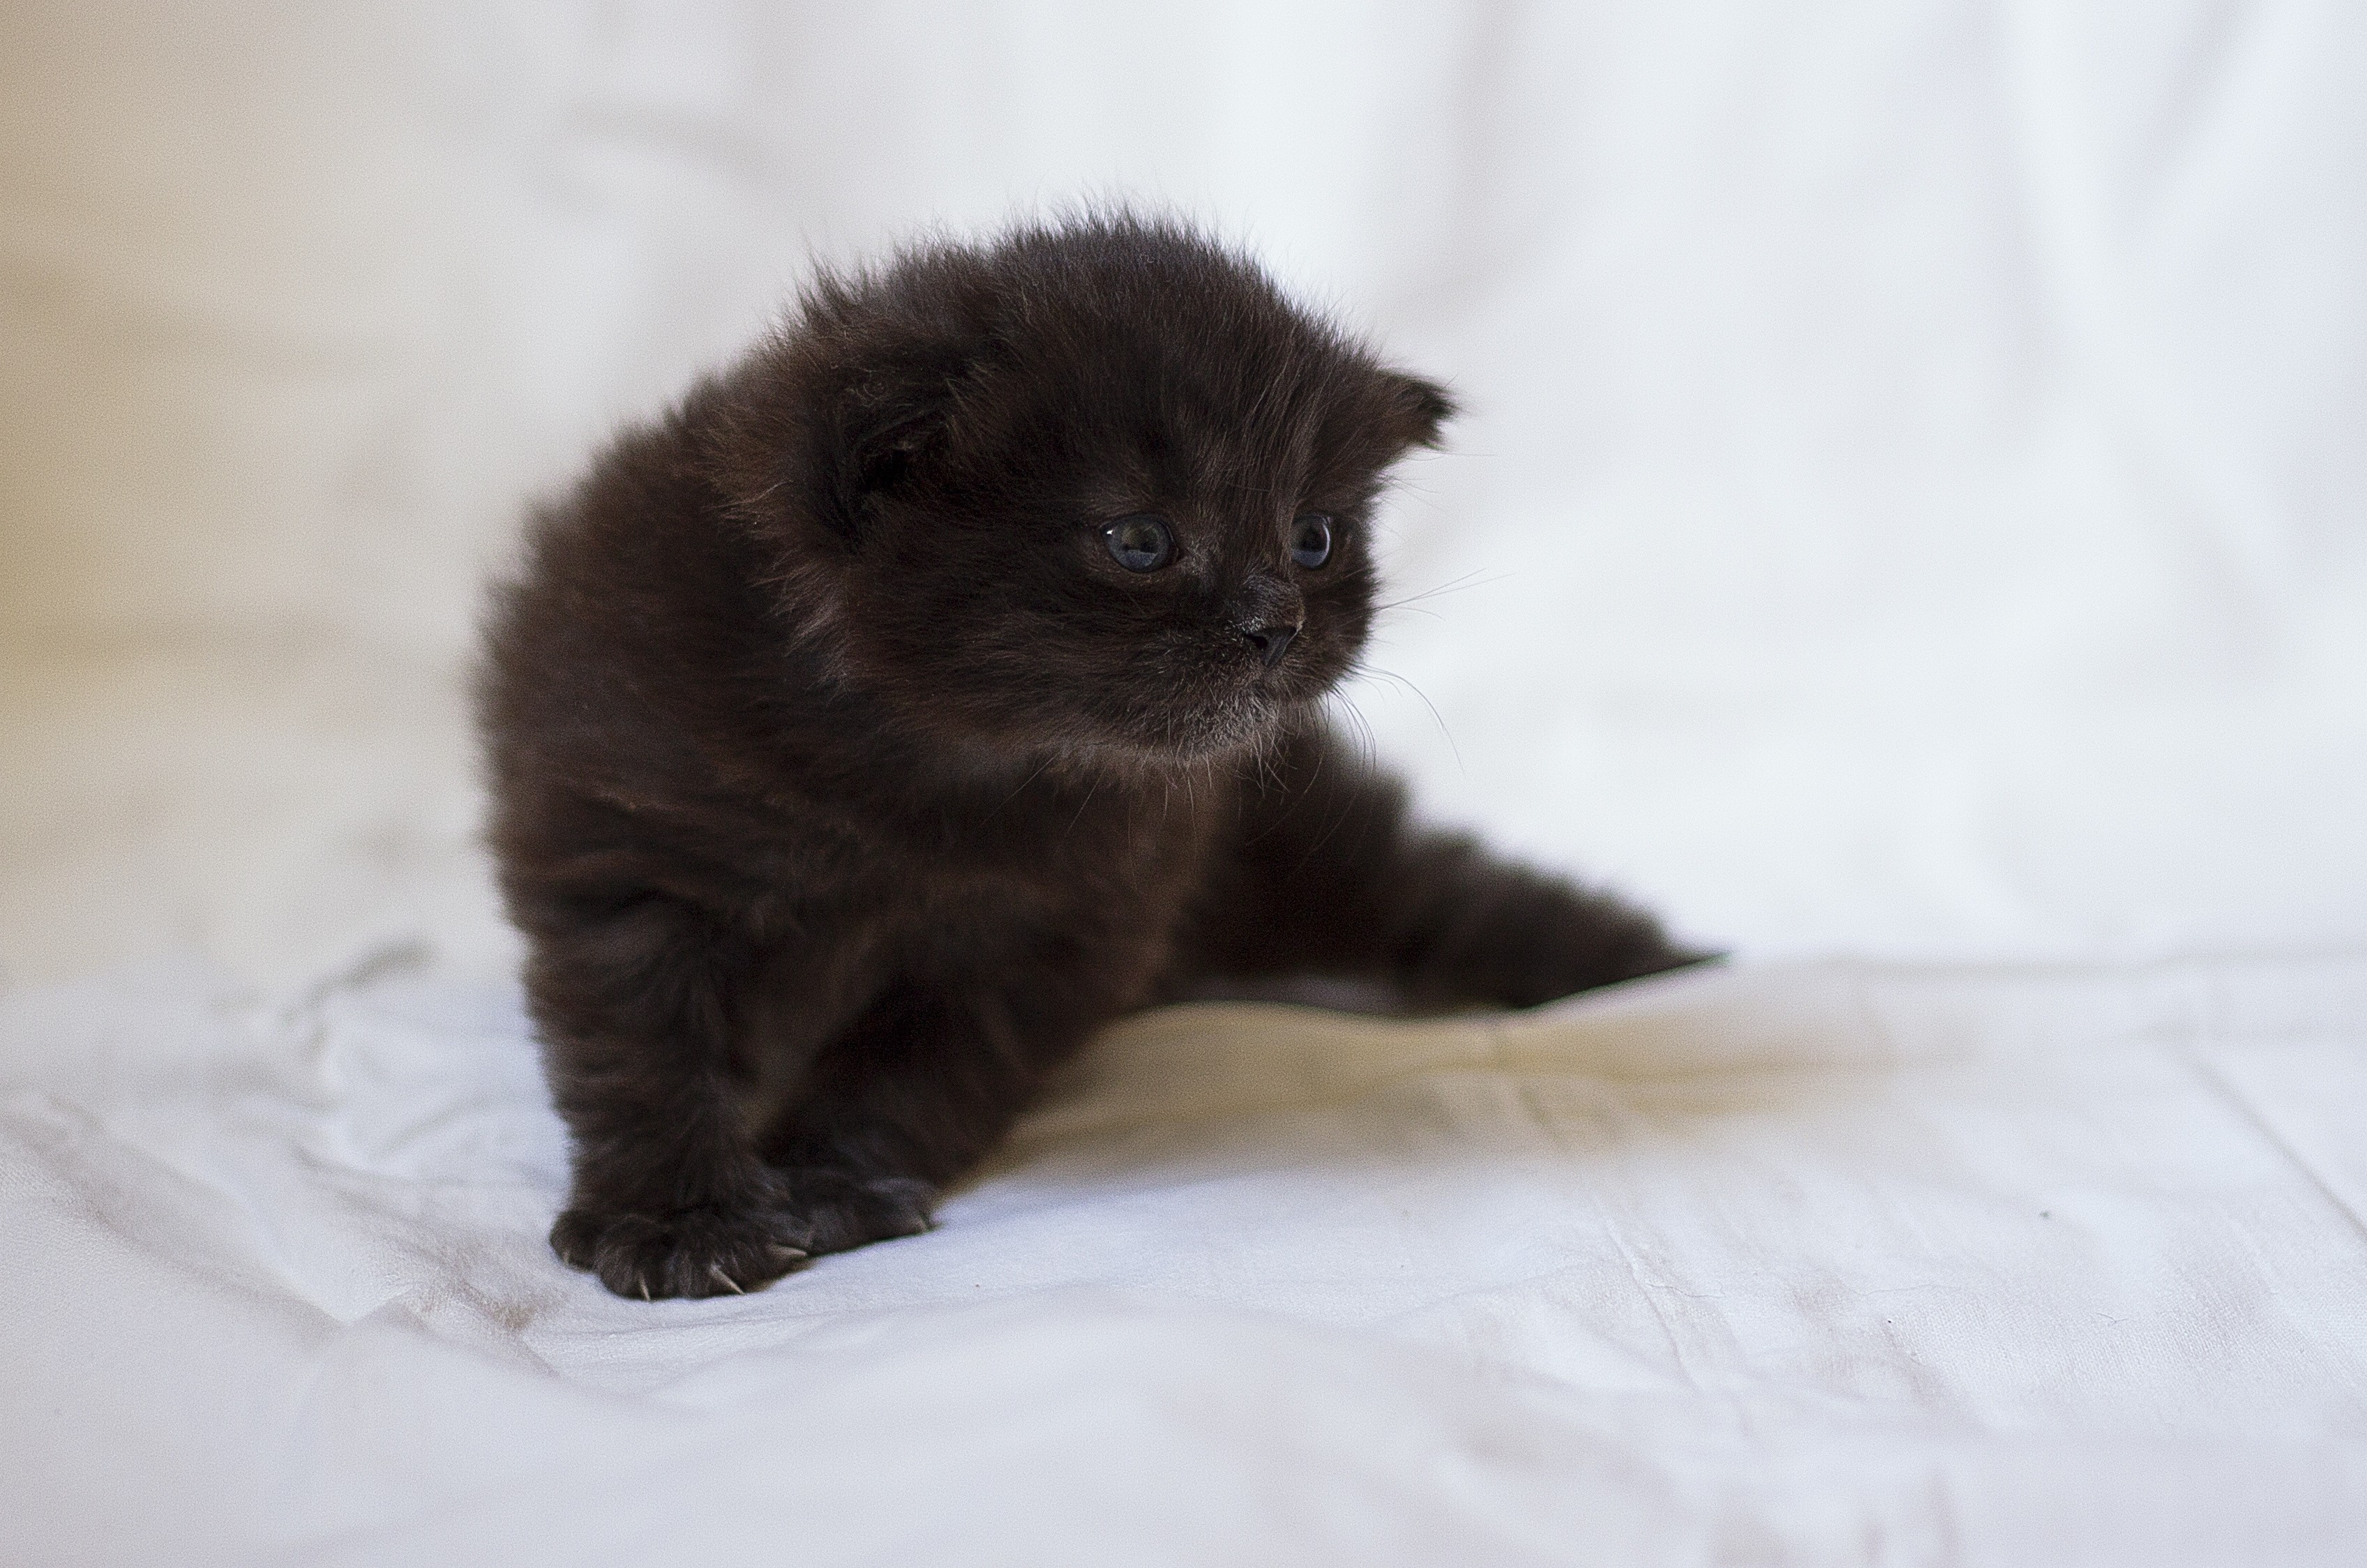 154931 Screensavers and Wallpapers Kitten for phone. Download Animals, Fluffy, Kitty, Kitten, Sight, Opinion, Kid, Tot pictures for free